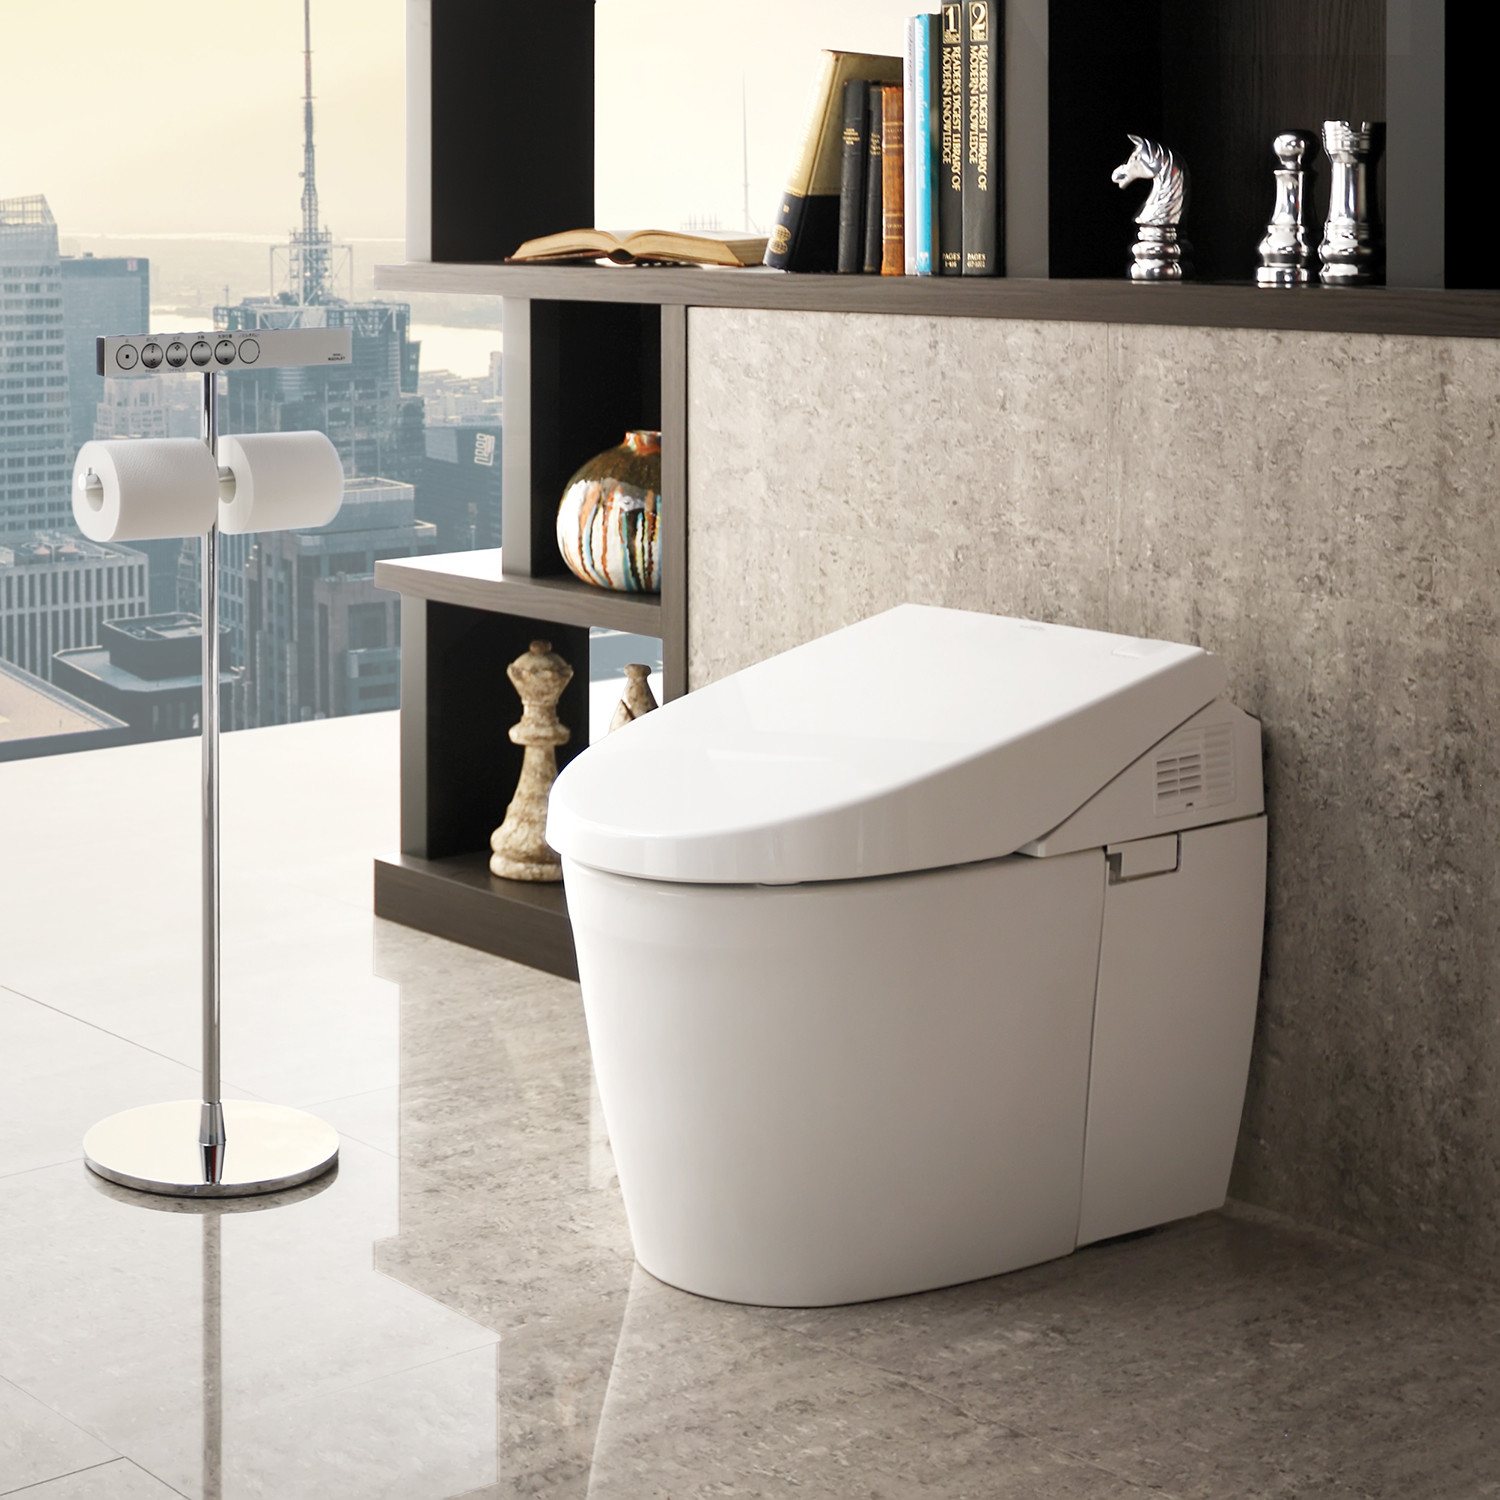 Toto Neorest 550h Dual Flush Ewater Smart Toilet With